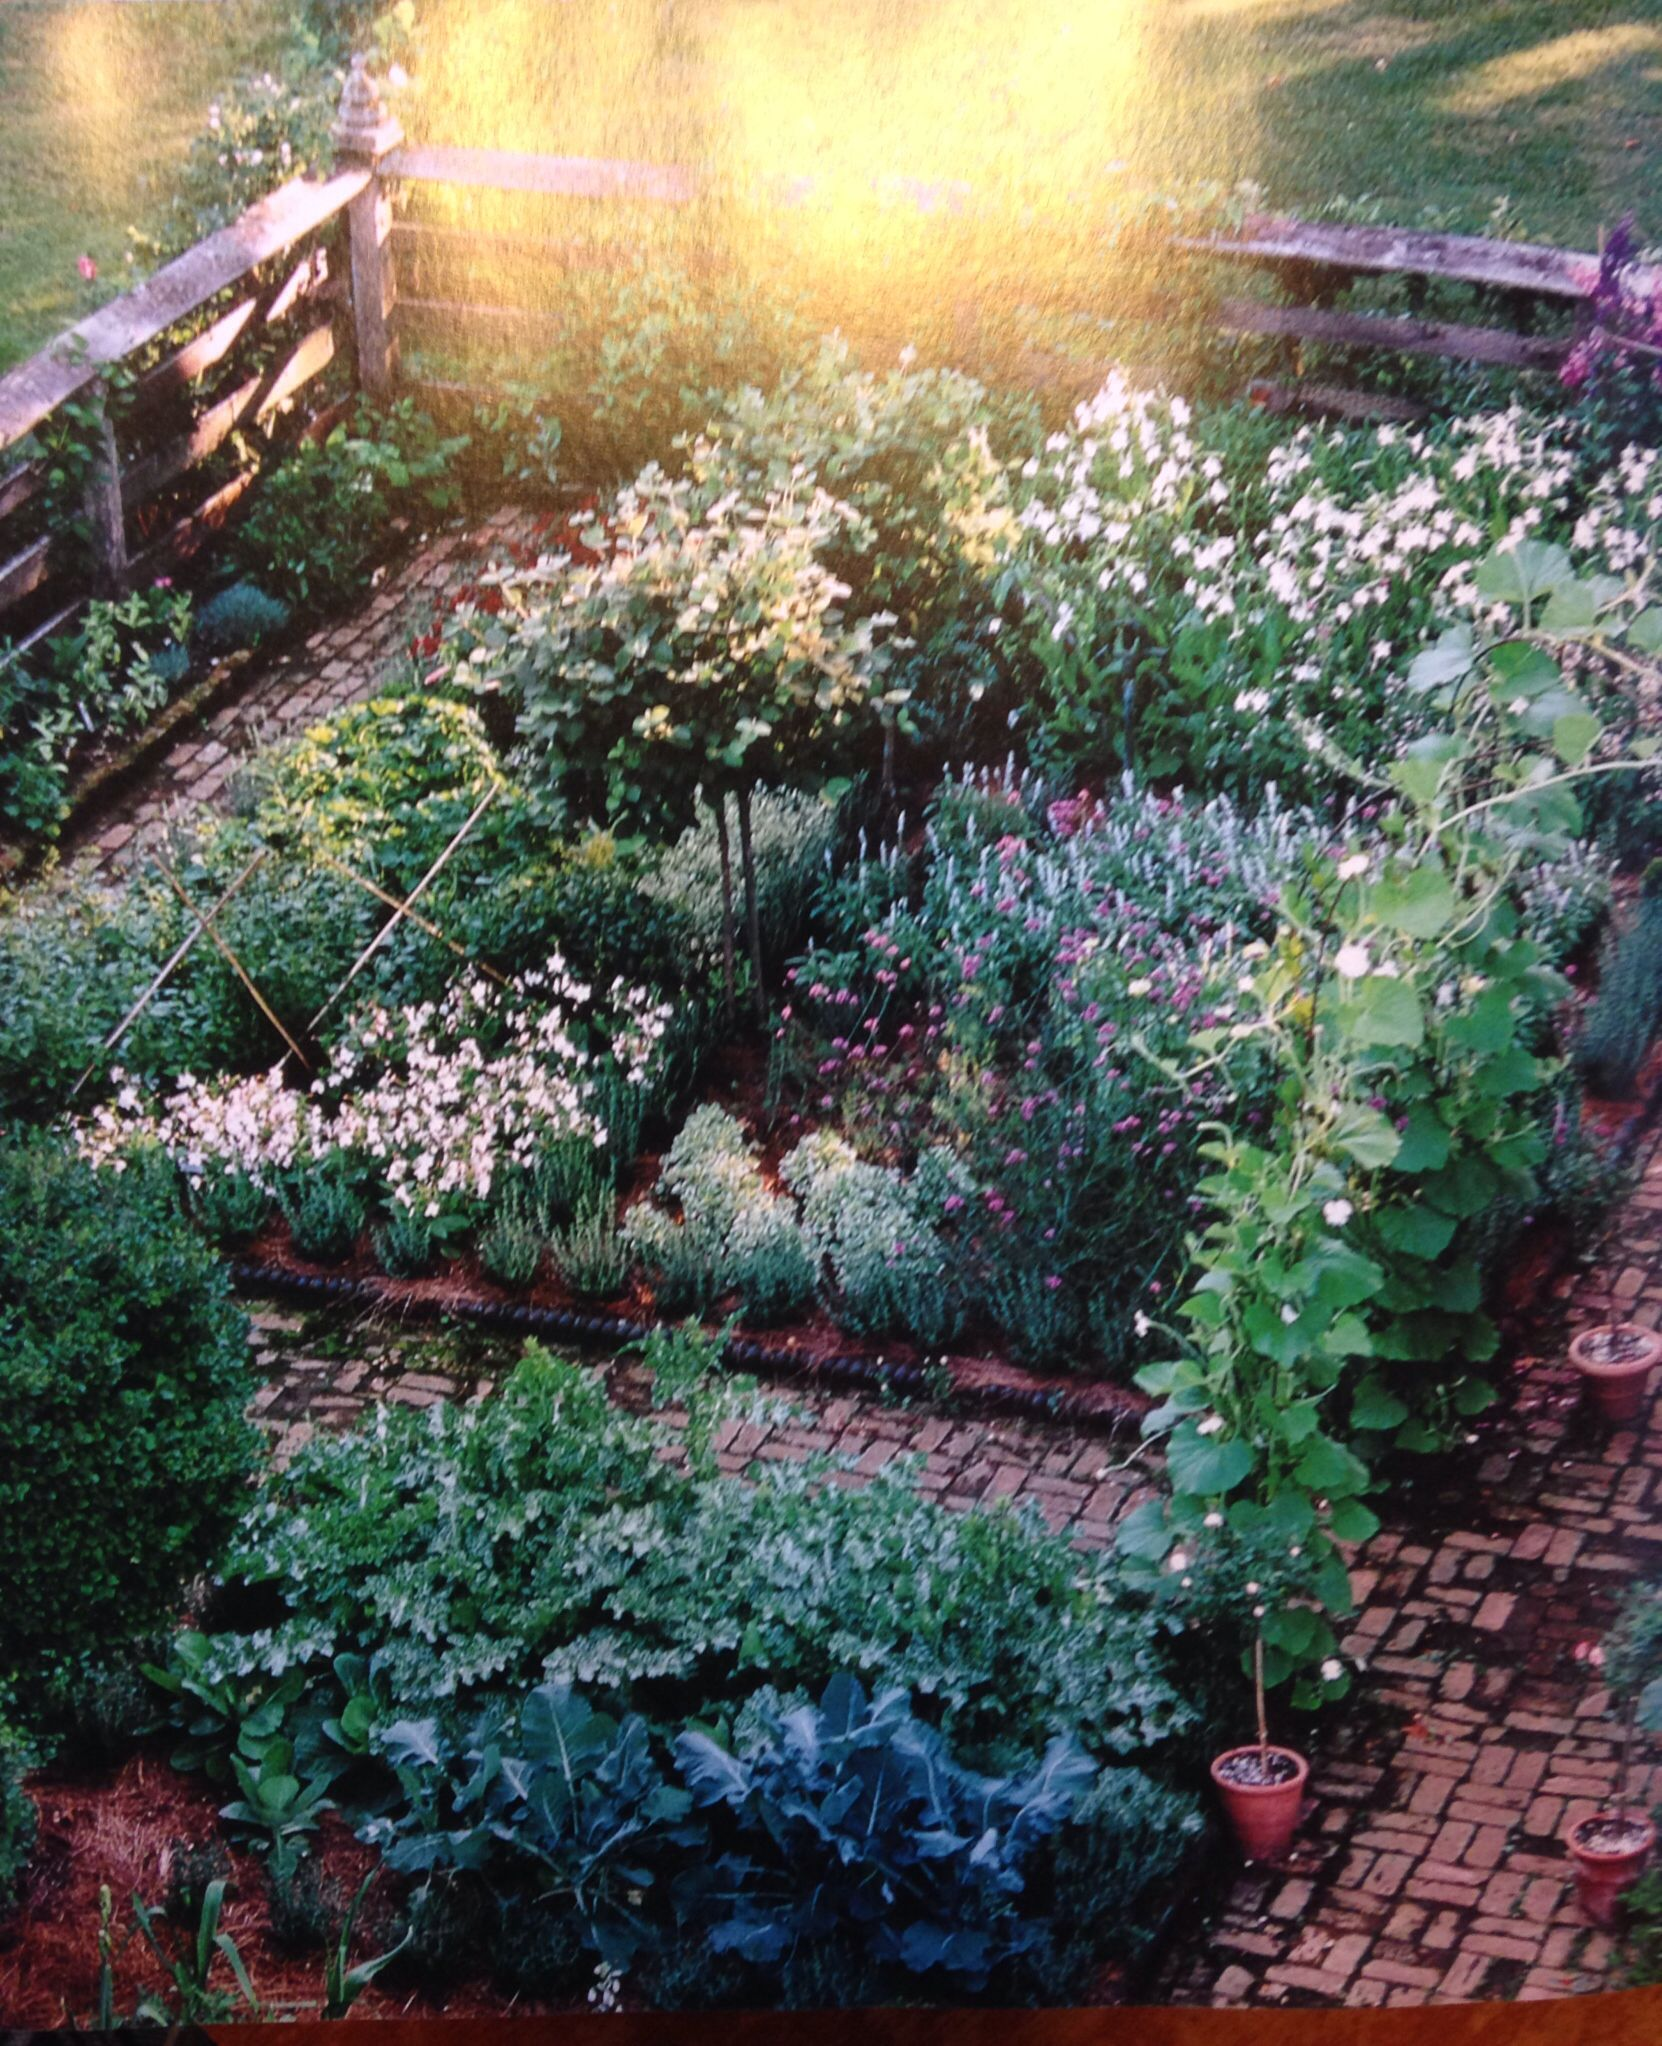 Bunny williams 39 s kitchen garden from her book on gardens for Jardines con maicillo